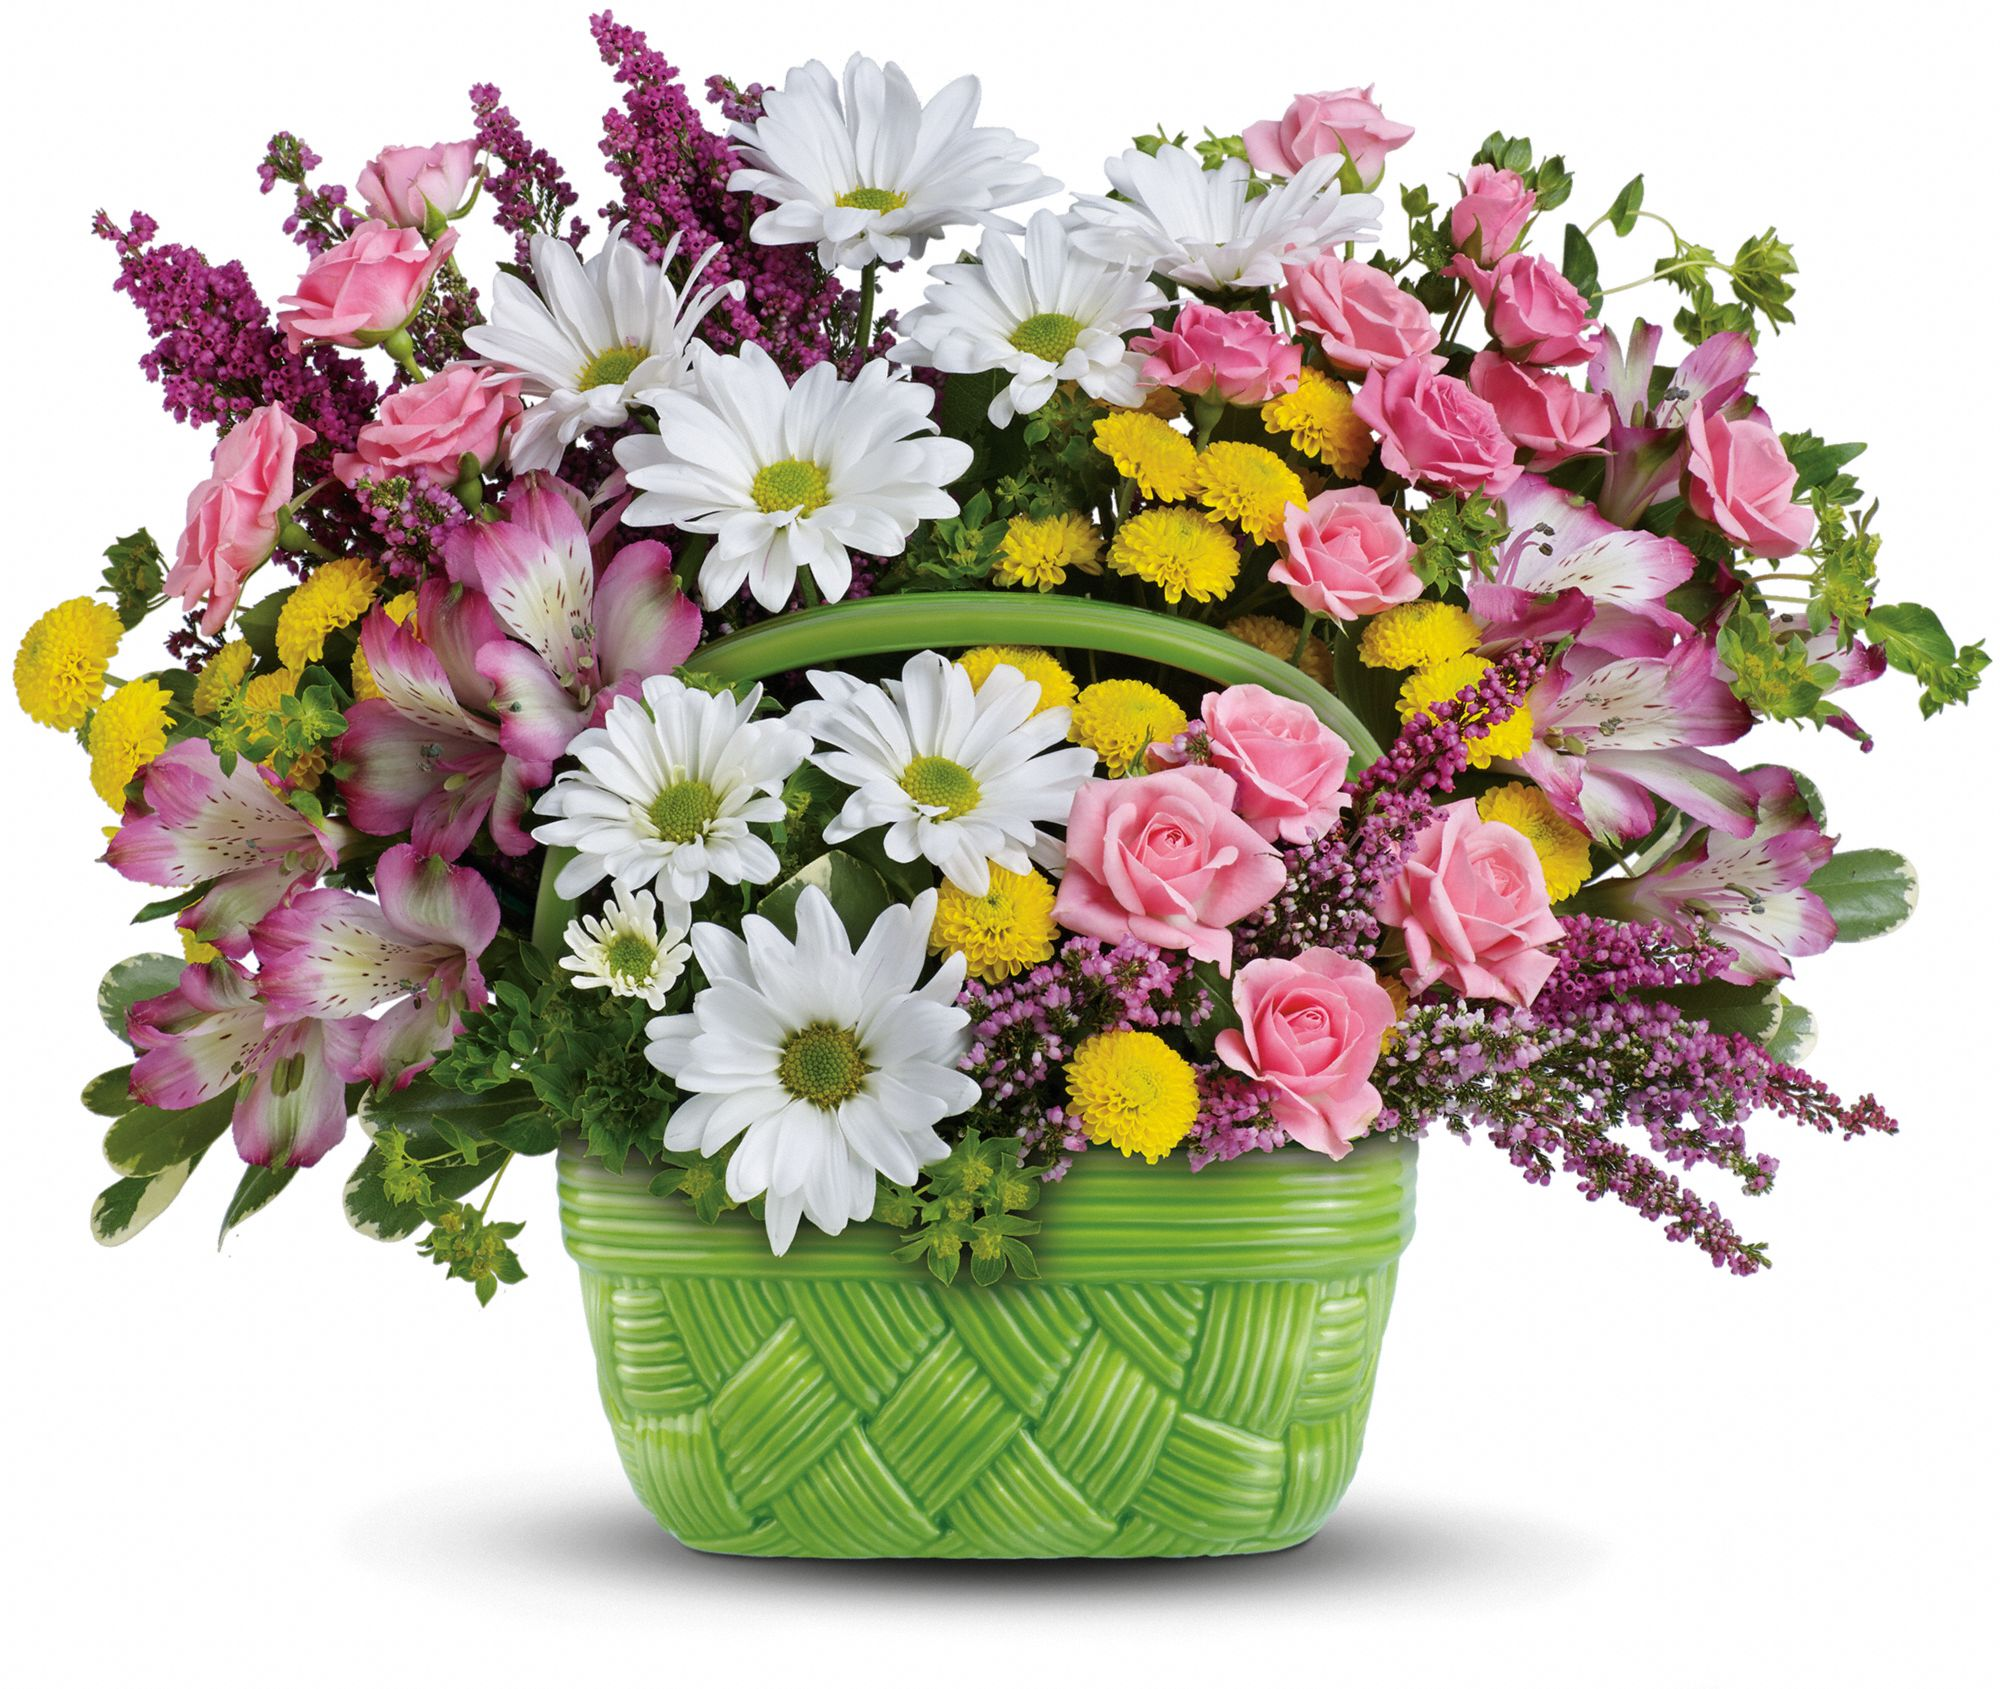 Easter Basket of flowers